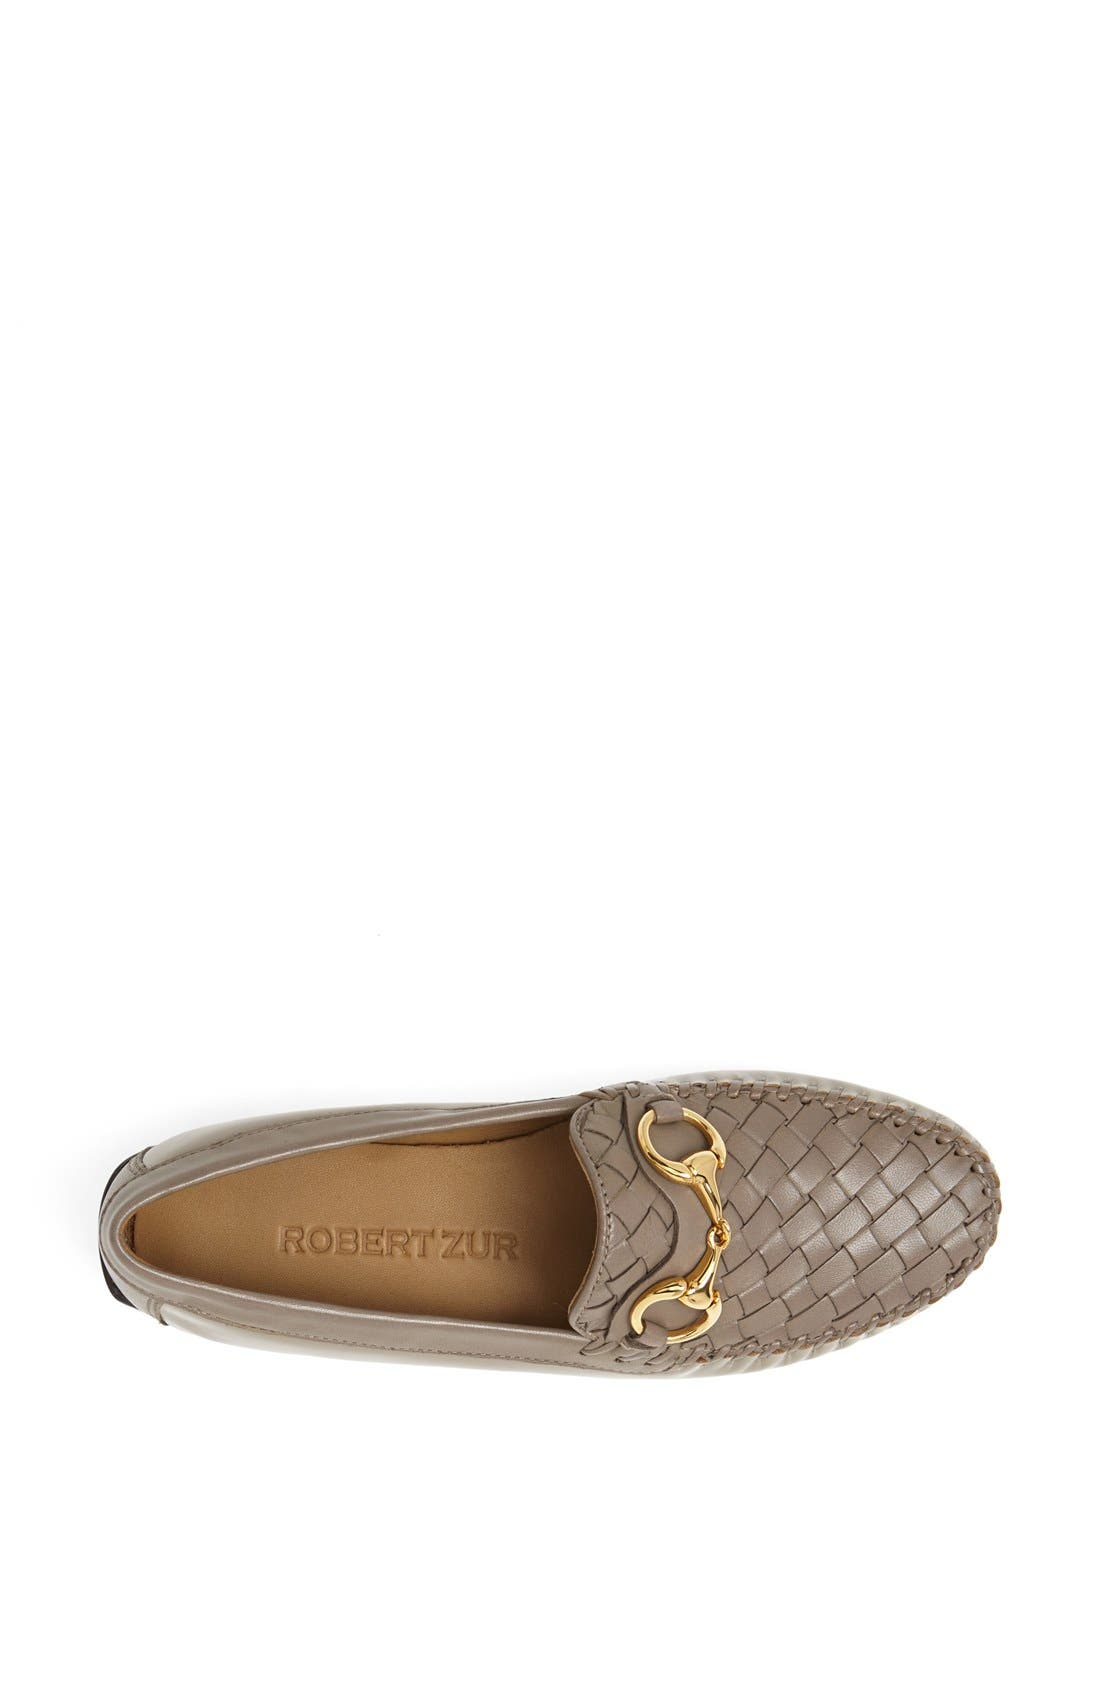 'Perlata' Loafer,                             Alternate thumbnail 3, color,                             Taupe Patent